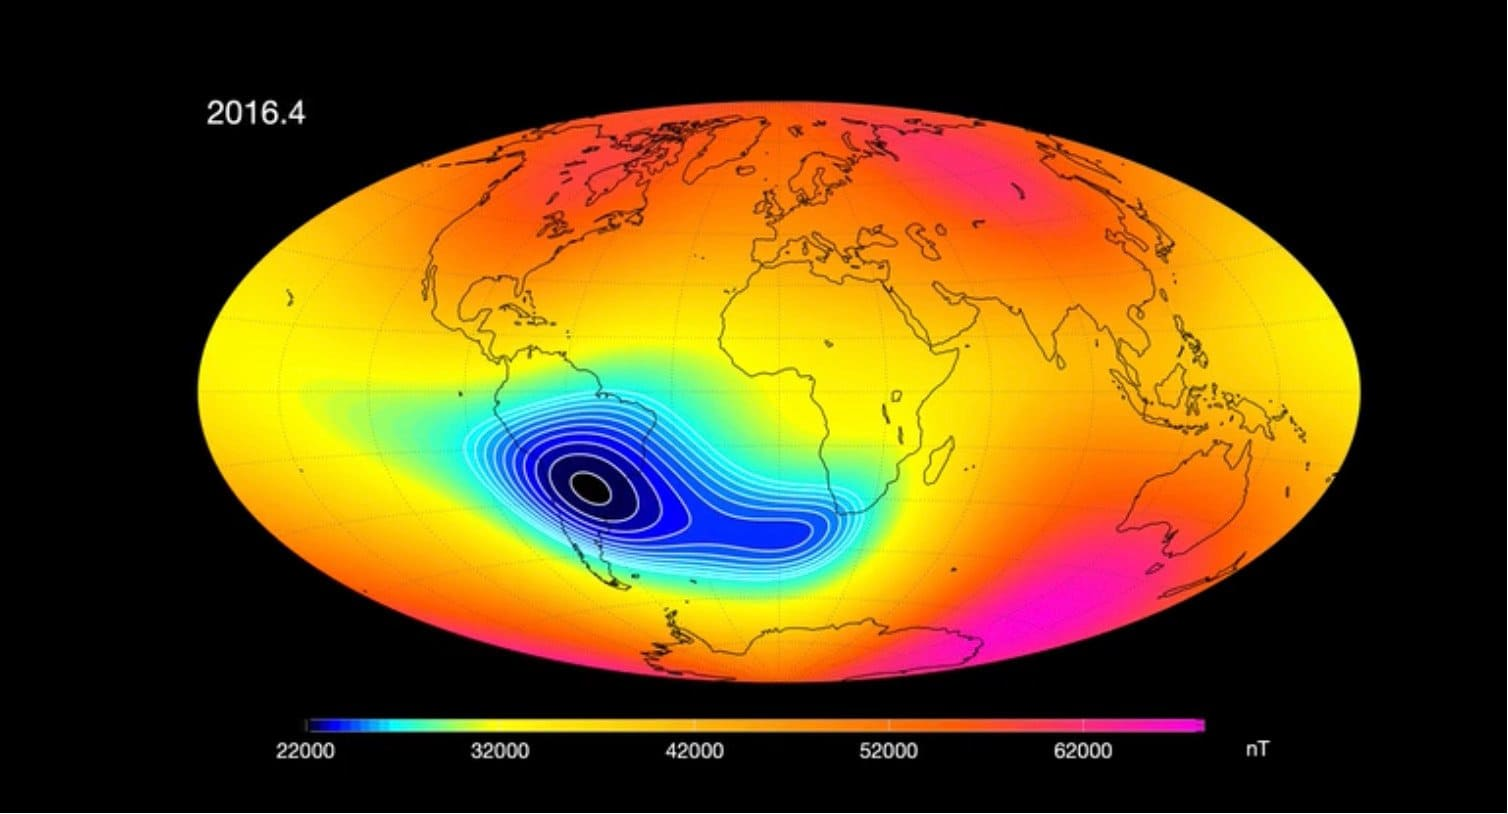 Scientists worried about Earth's weakening magnetic field; swarm satellites to investigate - Firstpost